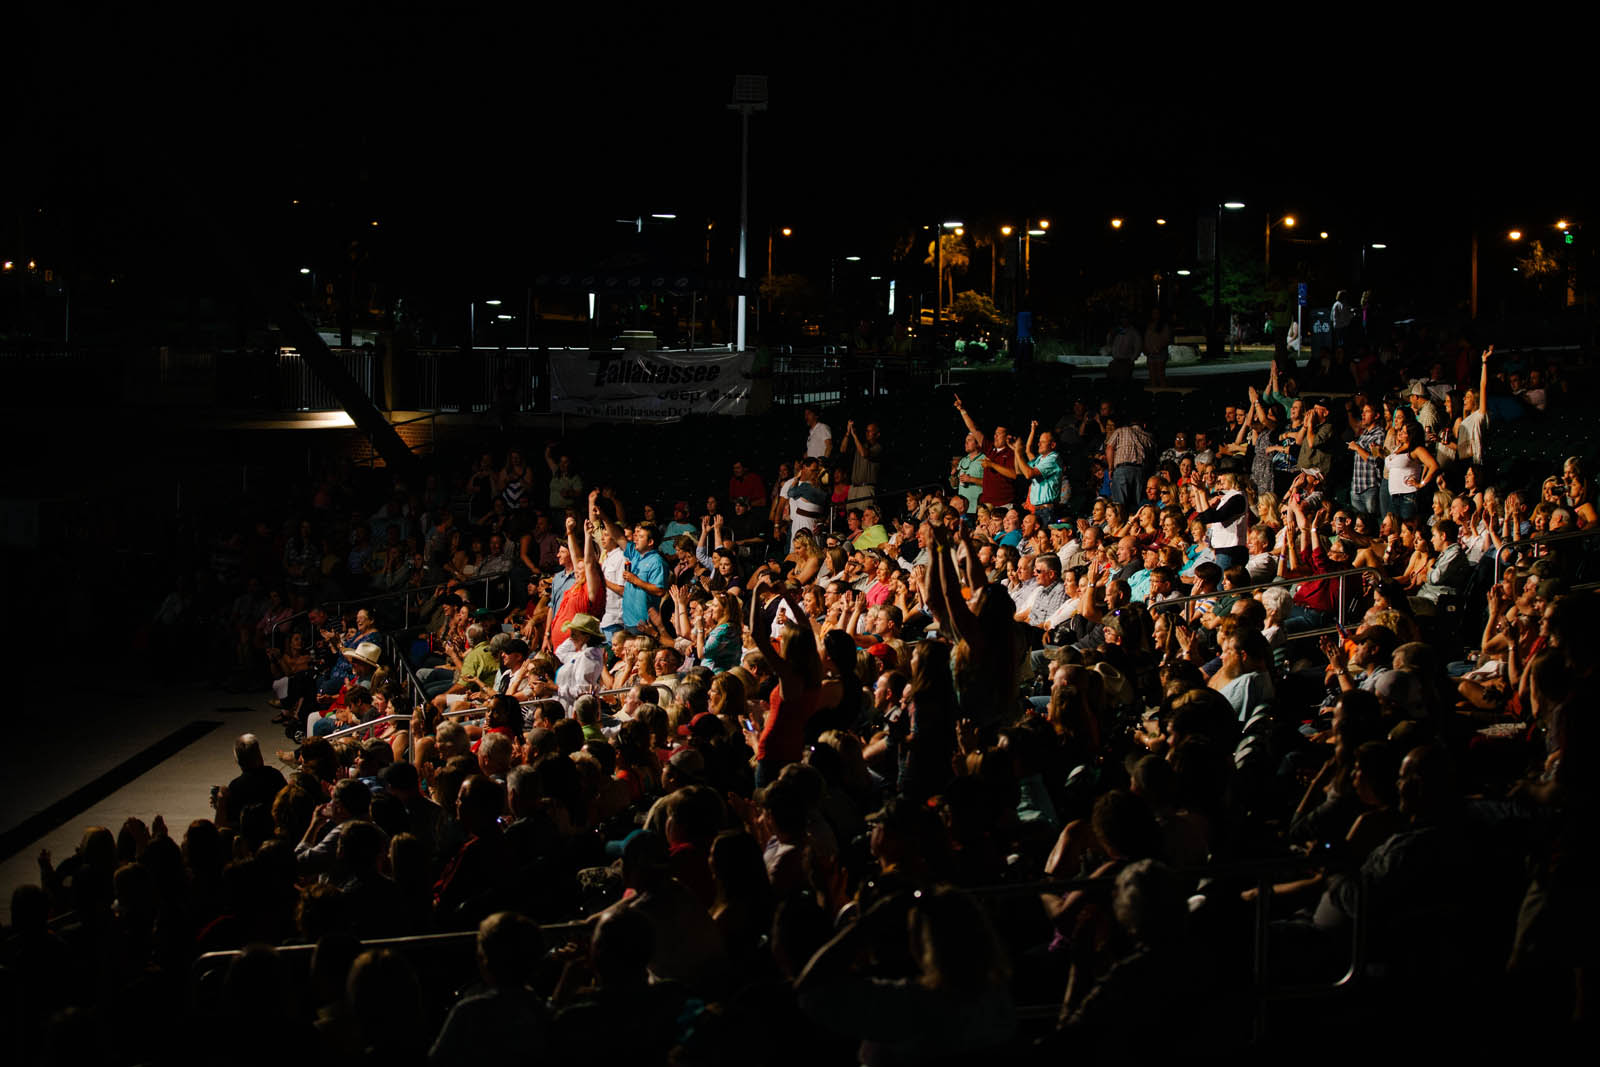 Capital City Amphitheater crowd picture